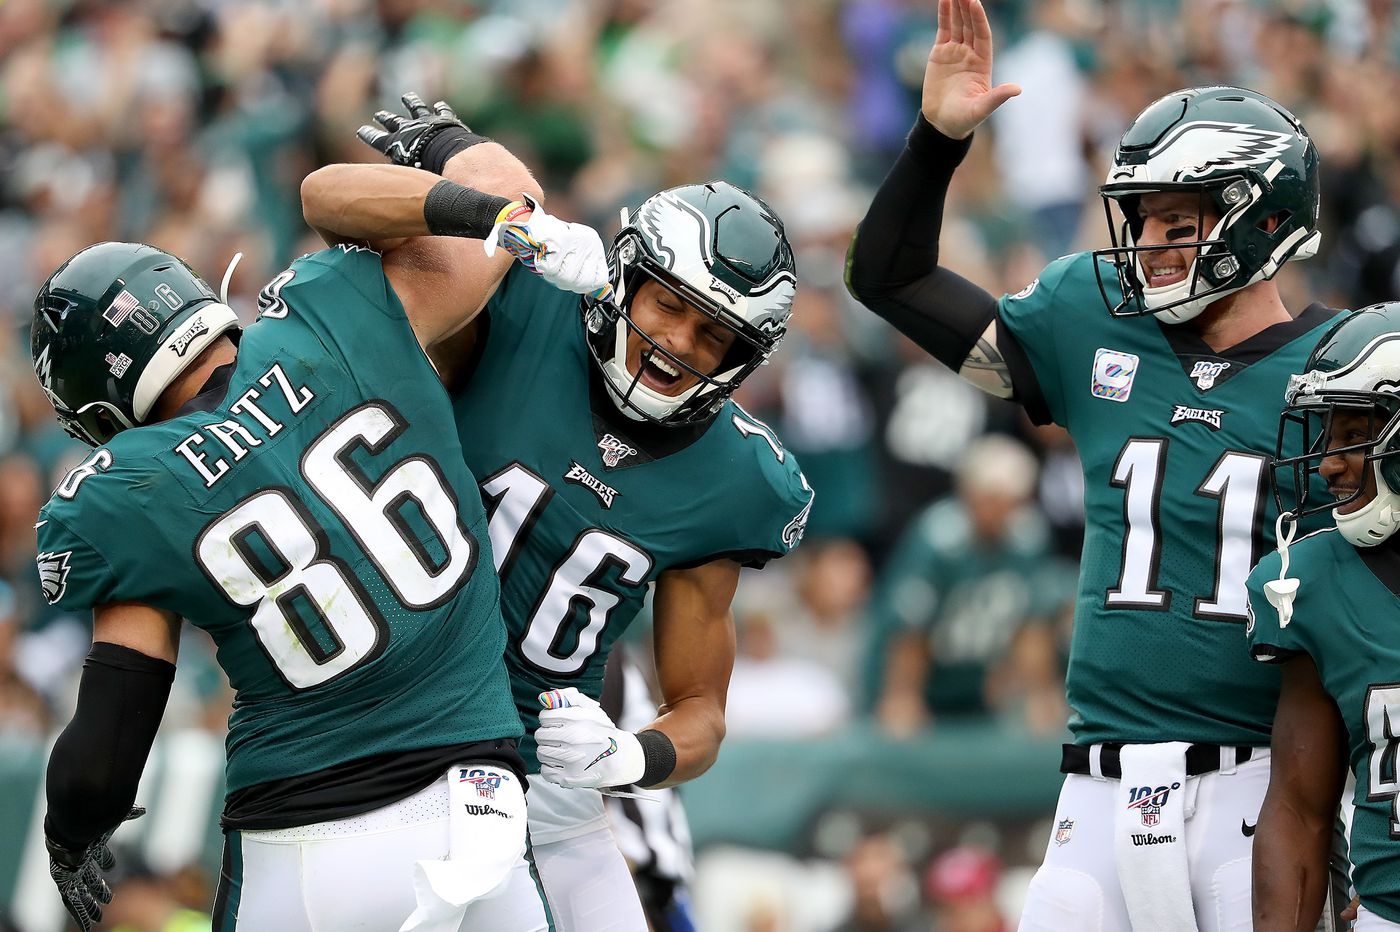 Sports betting: Vegas Vic's top plays are Cowboys on the road, Eagles at home and some Zach Ertz props